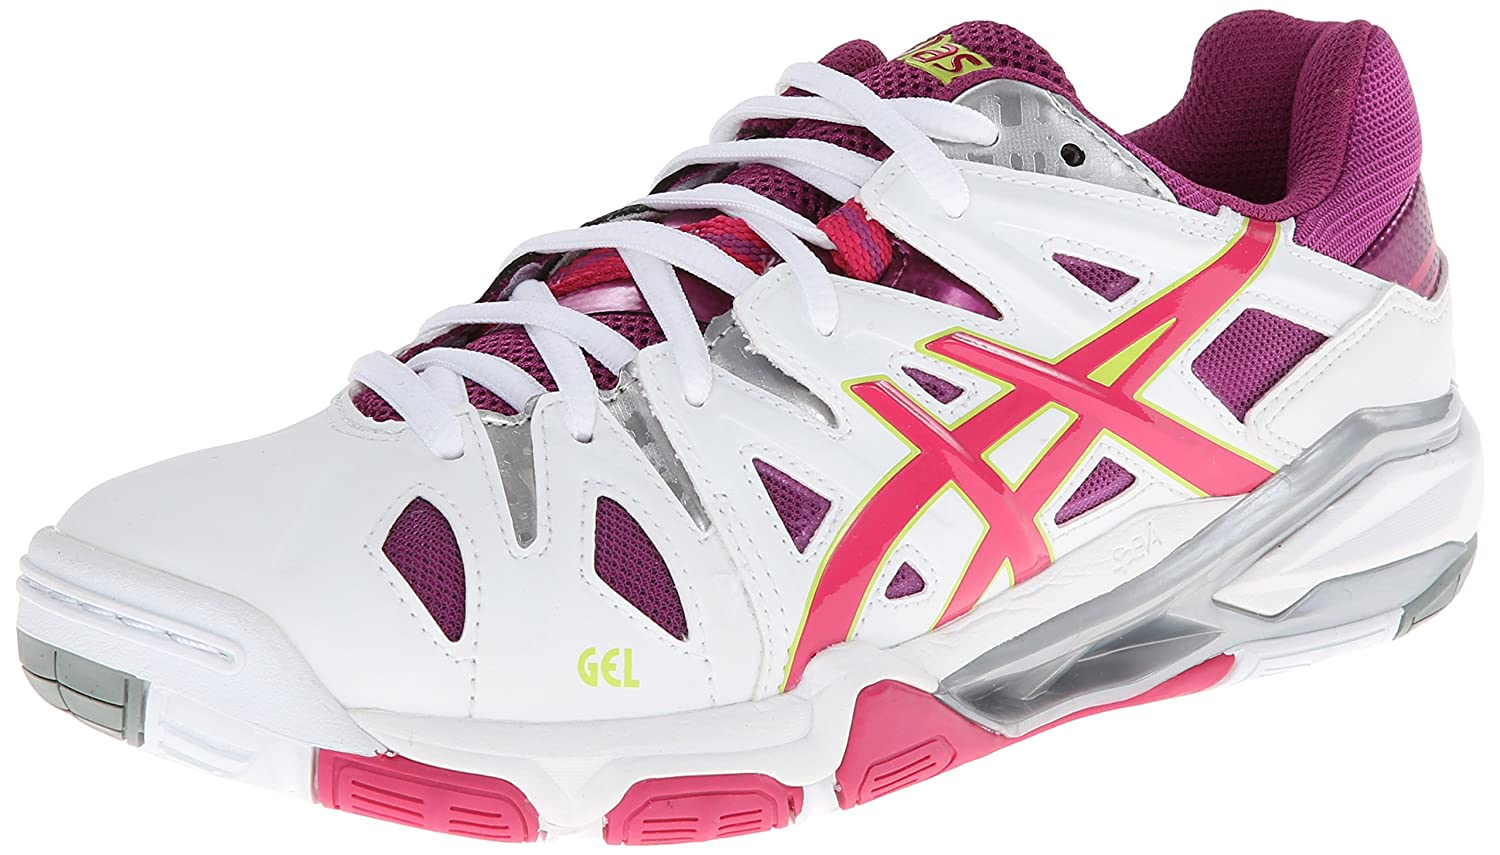 ASICS Women's Gel Sensei 5 Volley Ball Shoe B00GY06XME 9.5 B(M) US|White/Magenta/Silver